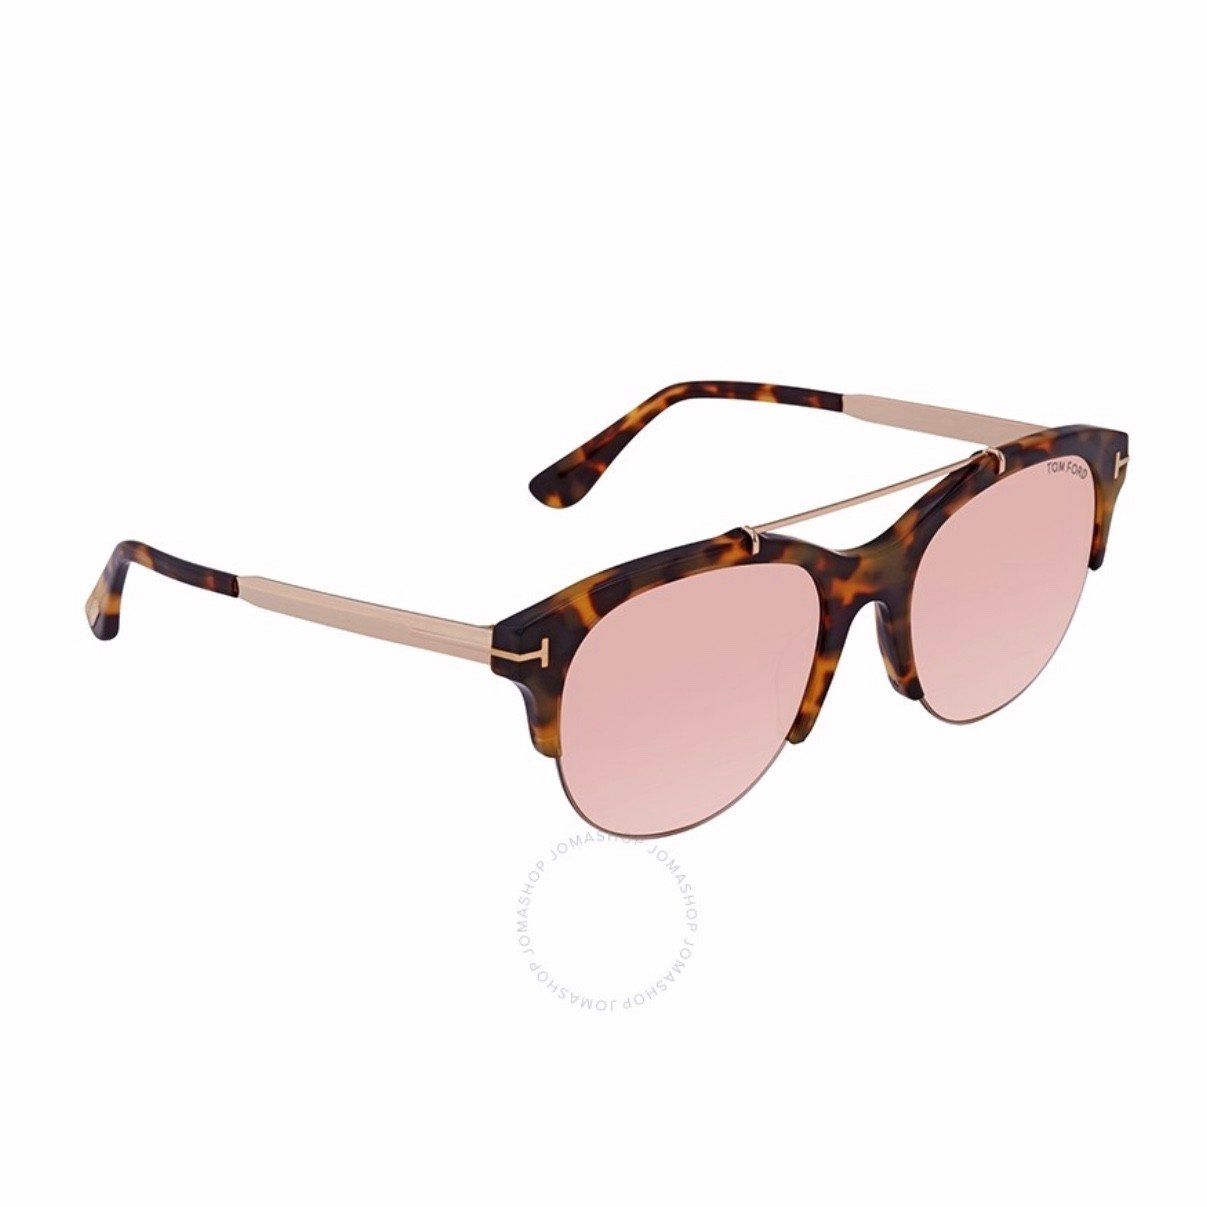 Tom Ford Tortoise Oval Ladies Sunglasses